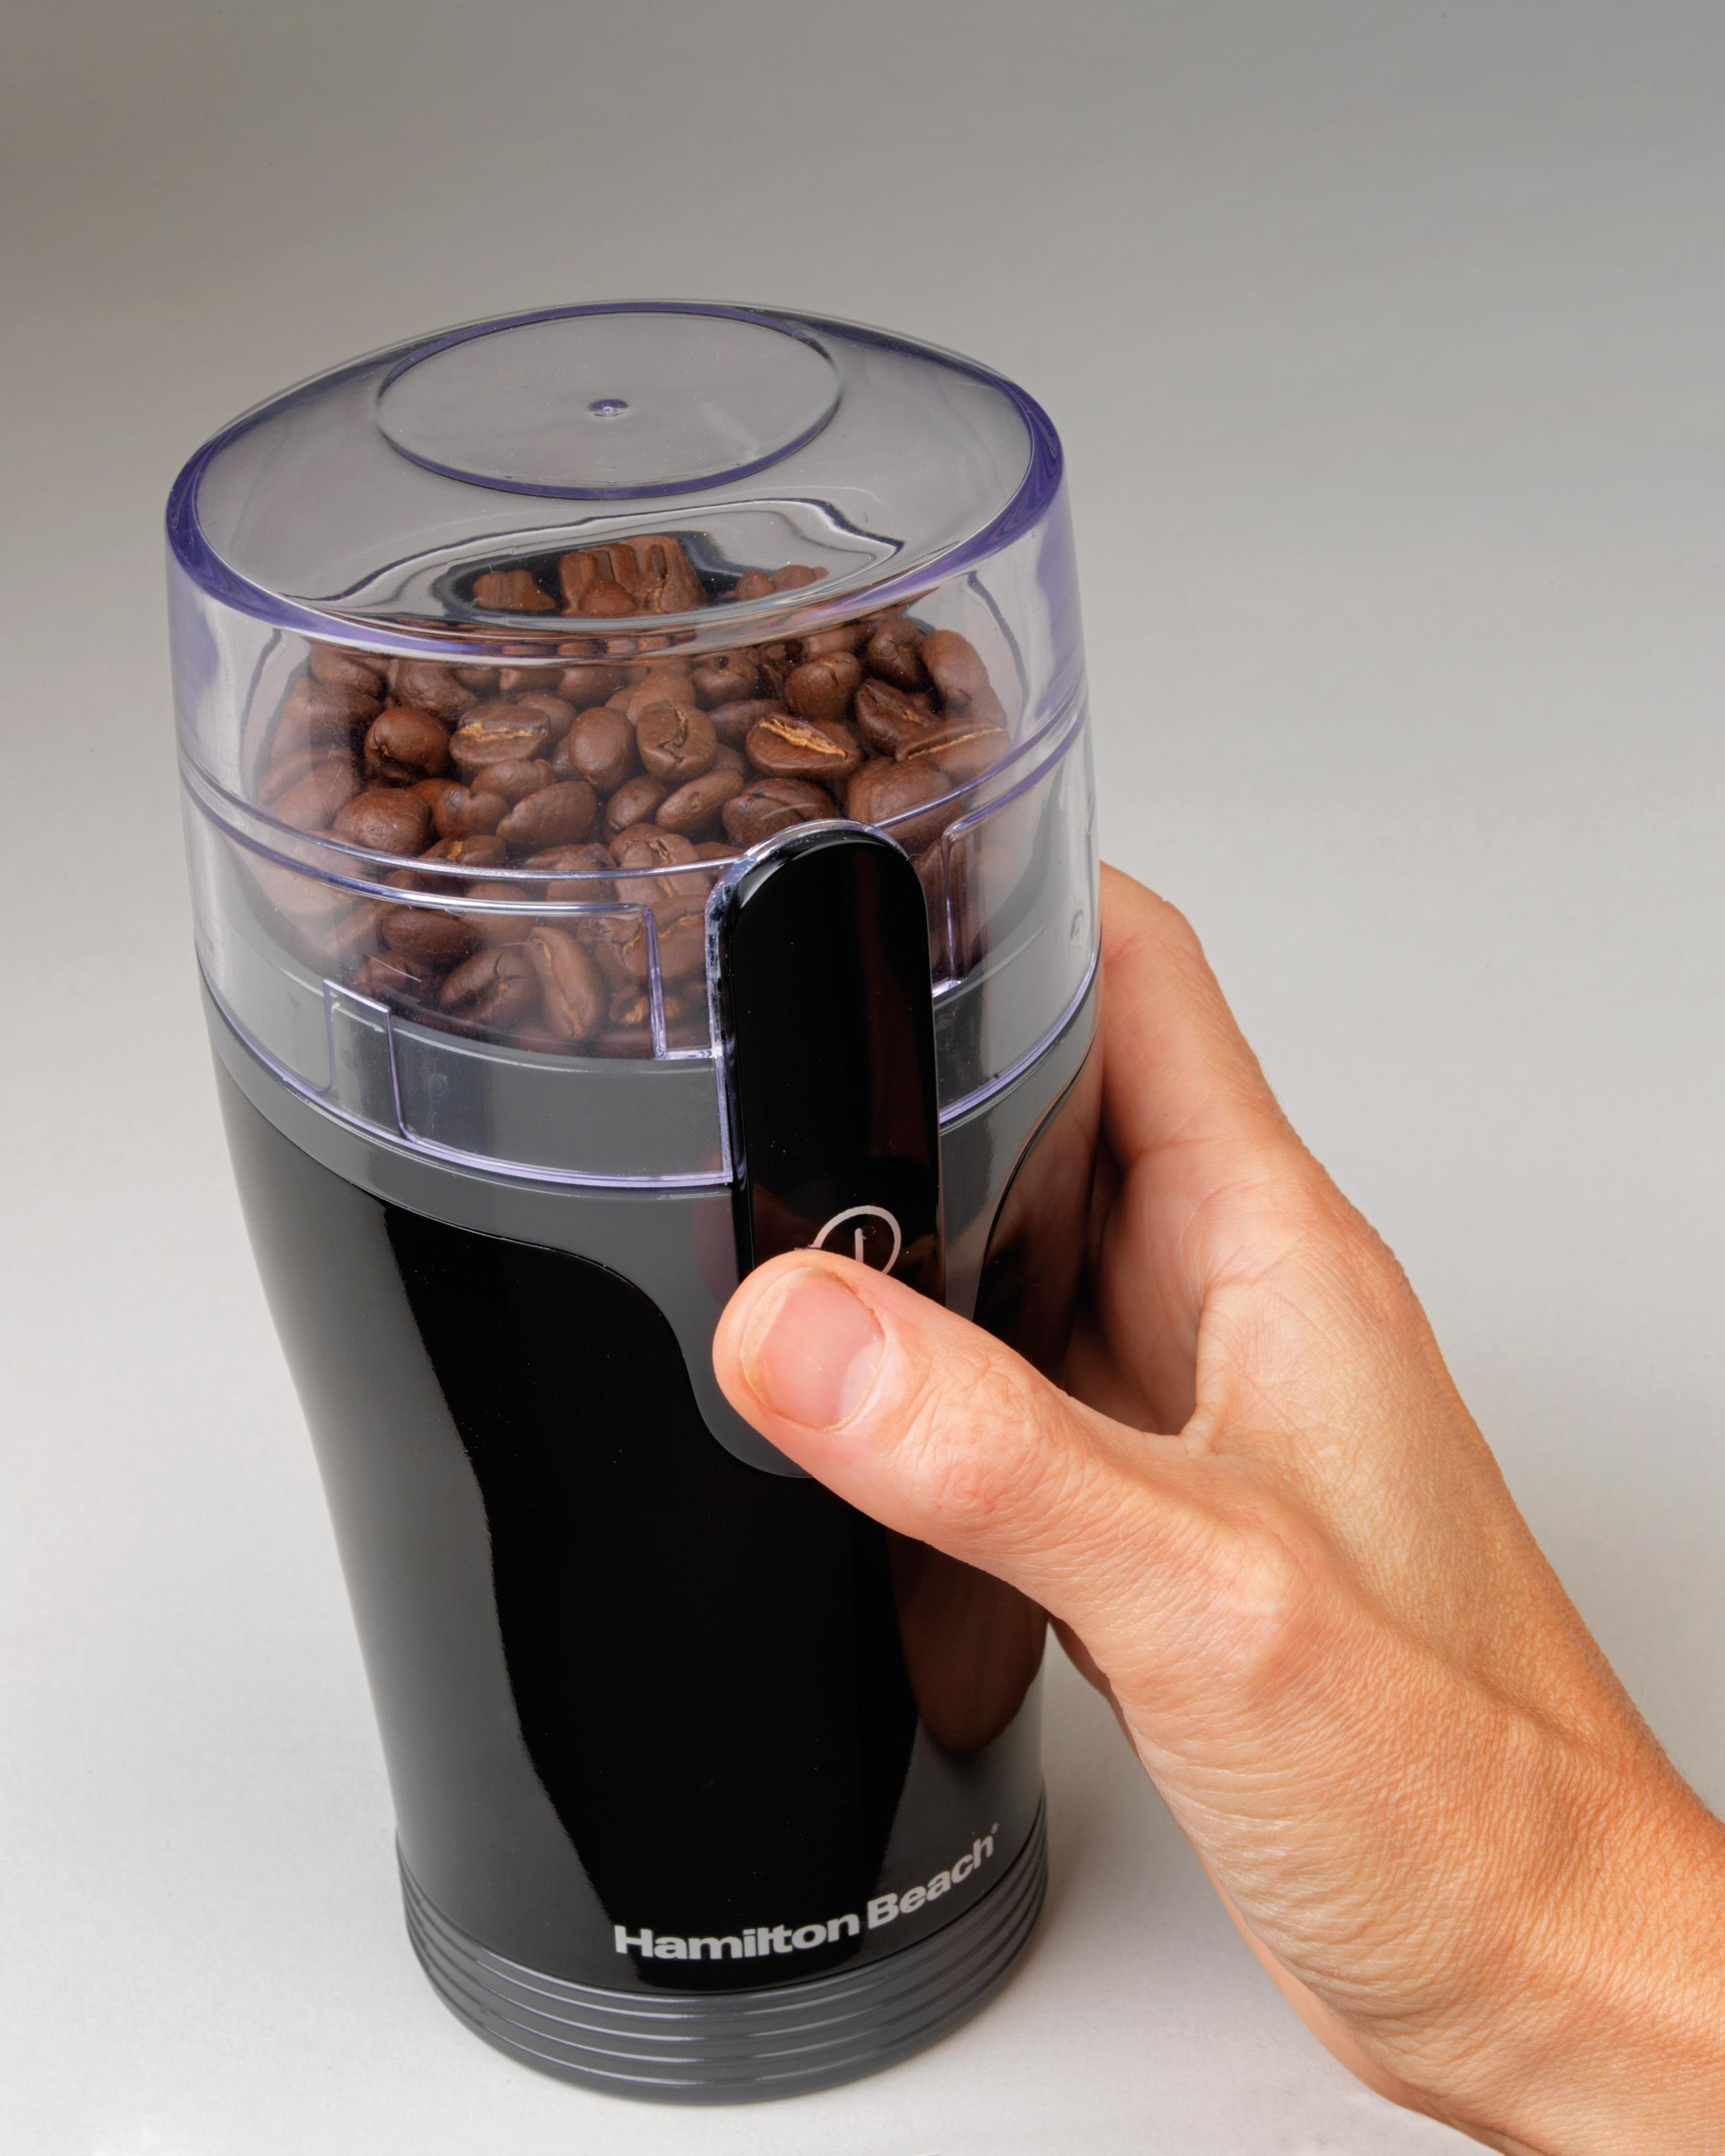 Coffee burr grinder review uk dating 7